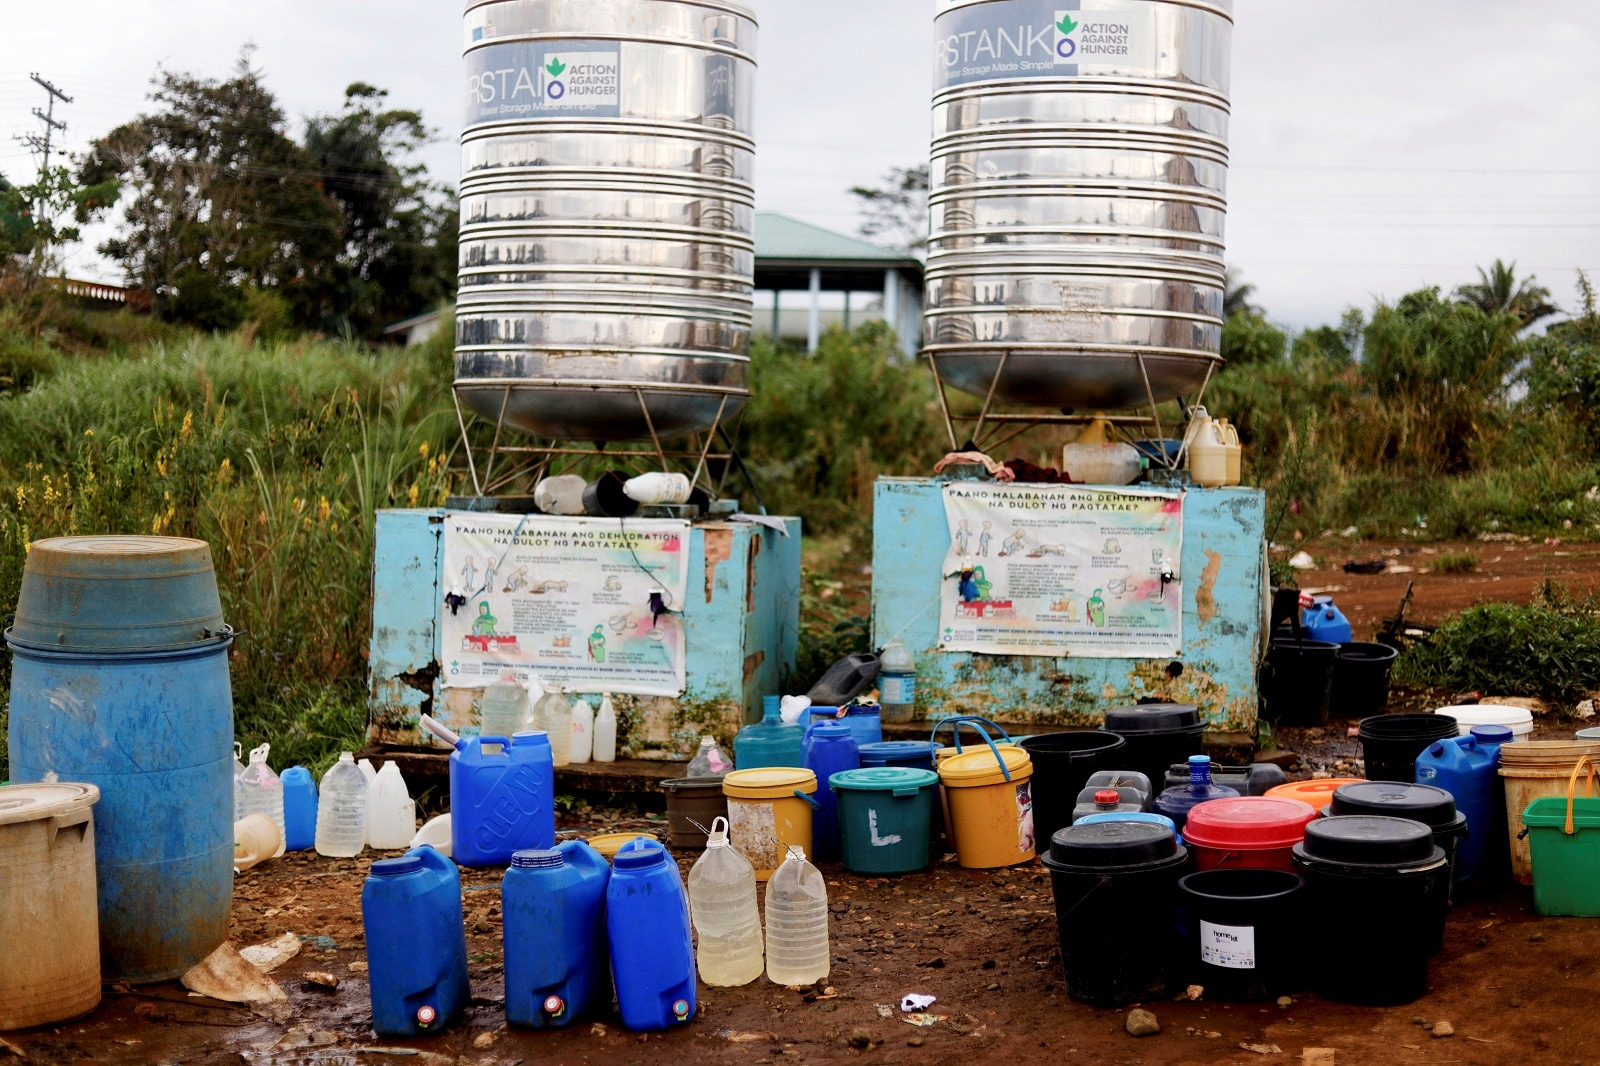 Containers are lined up beside a water tank at an evacuation camp in Marawi City, Lanao del Sur province, Philippines, May 12, 2019. REUTERS/Eloisa Lopez